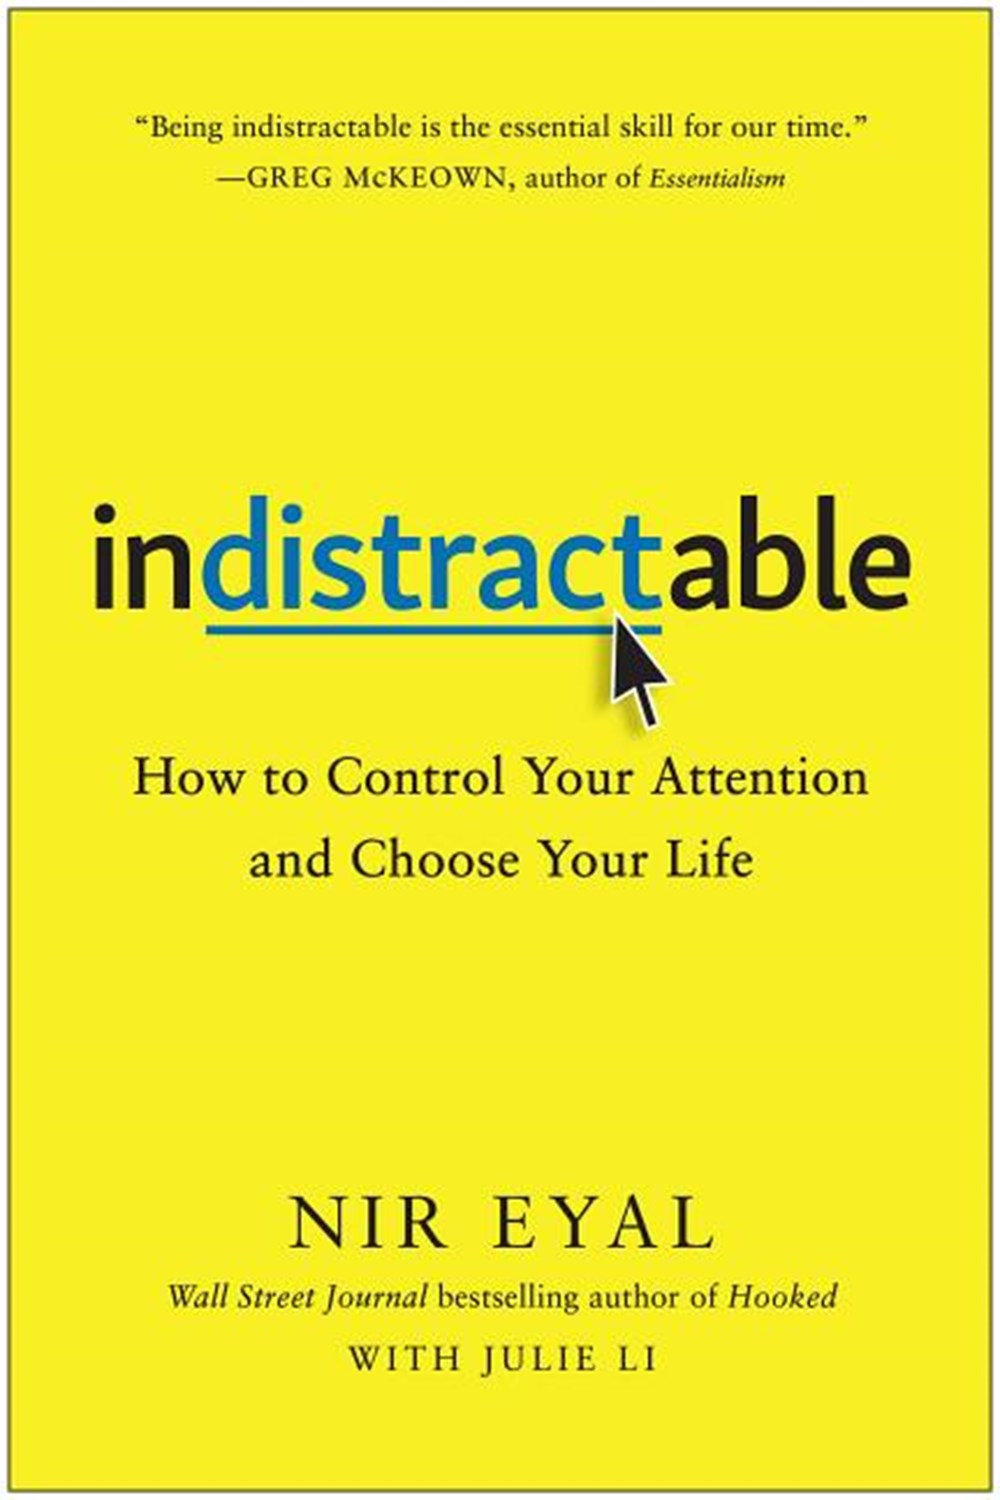 Indistractable How to Control Your Attention and Choose Your Life